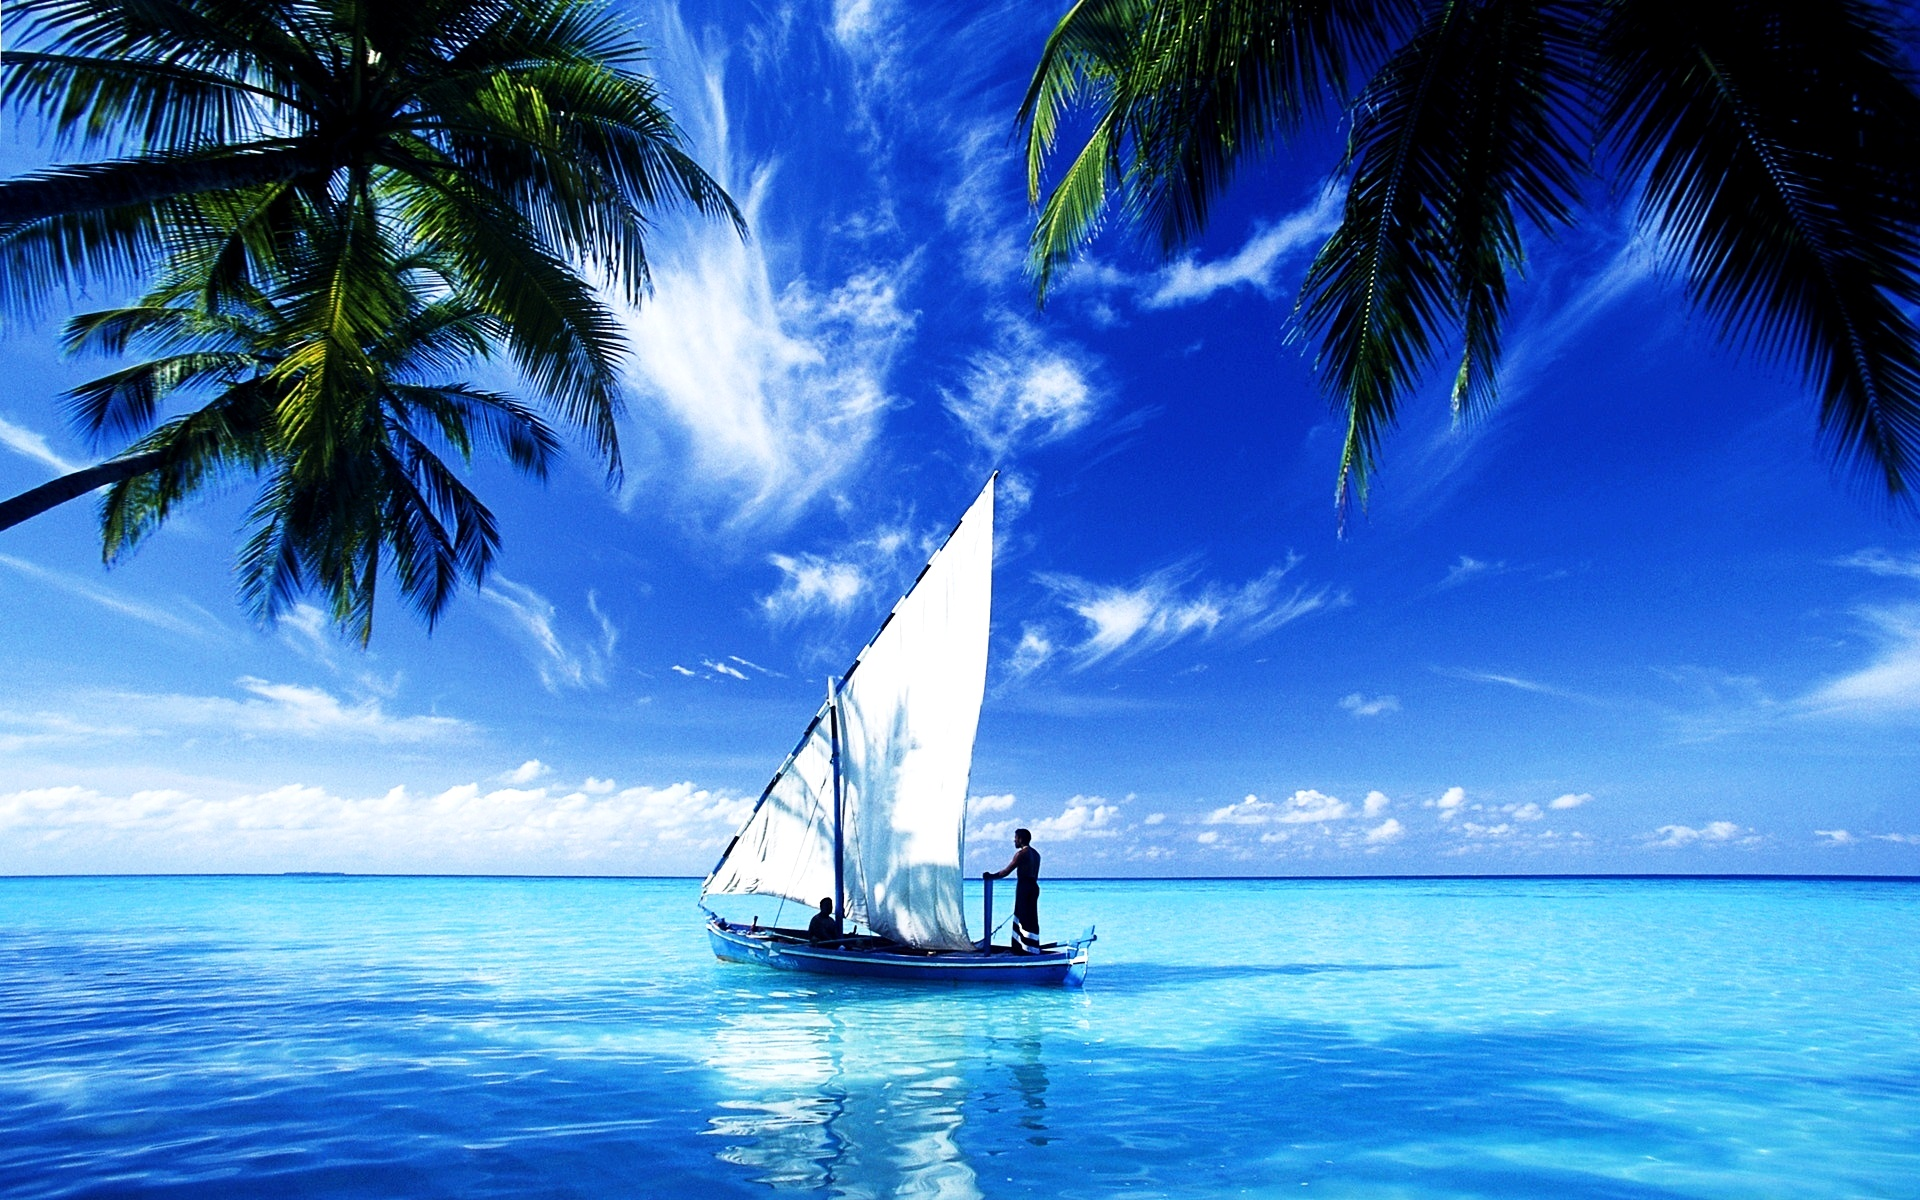 Boat Ocean Wallpapers HD 1920x1200